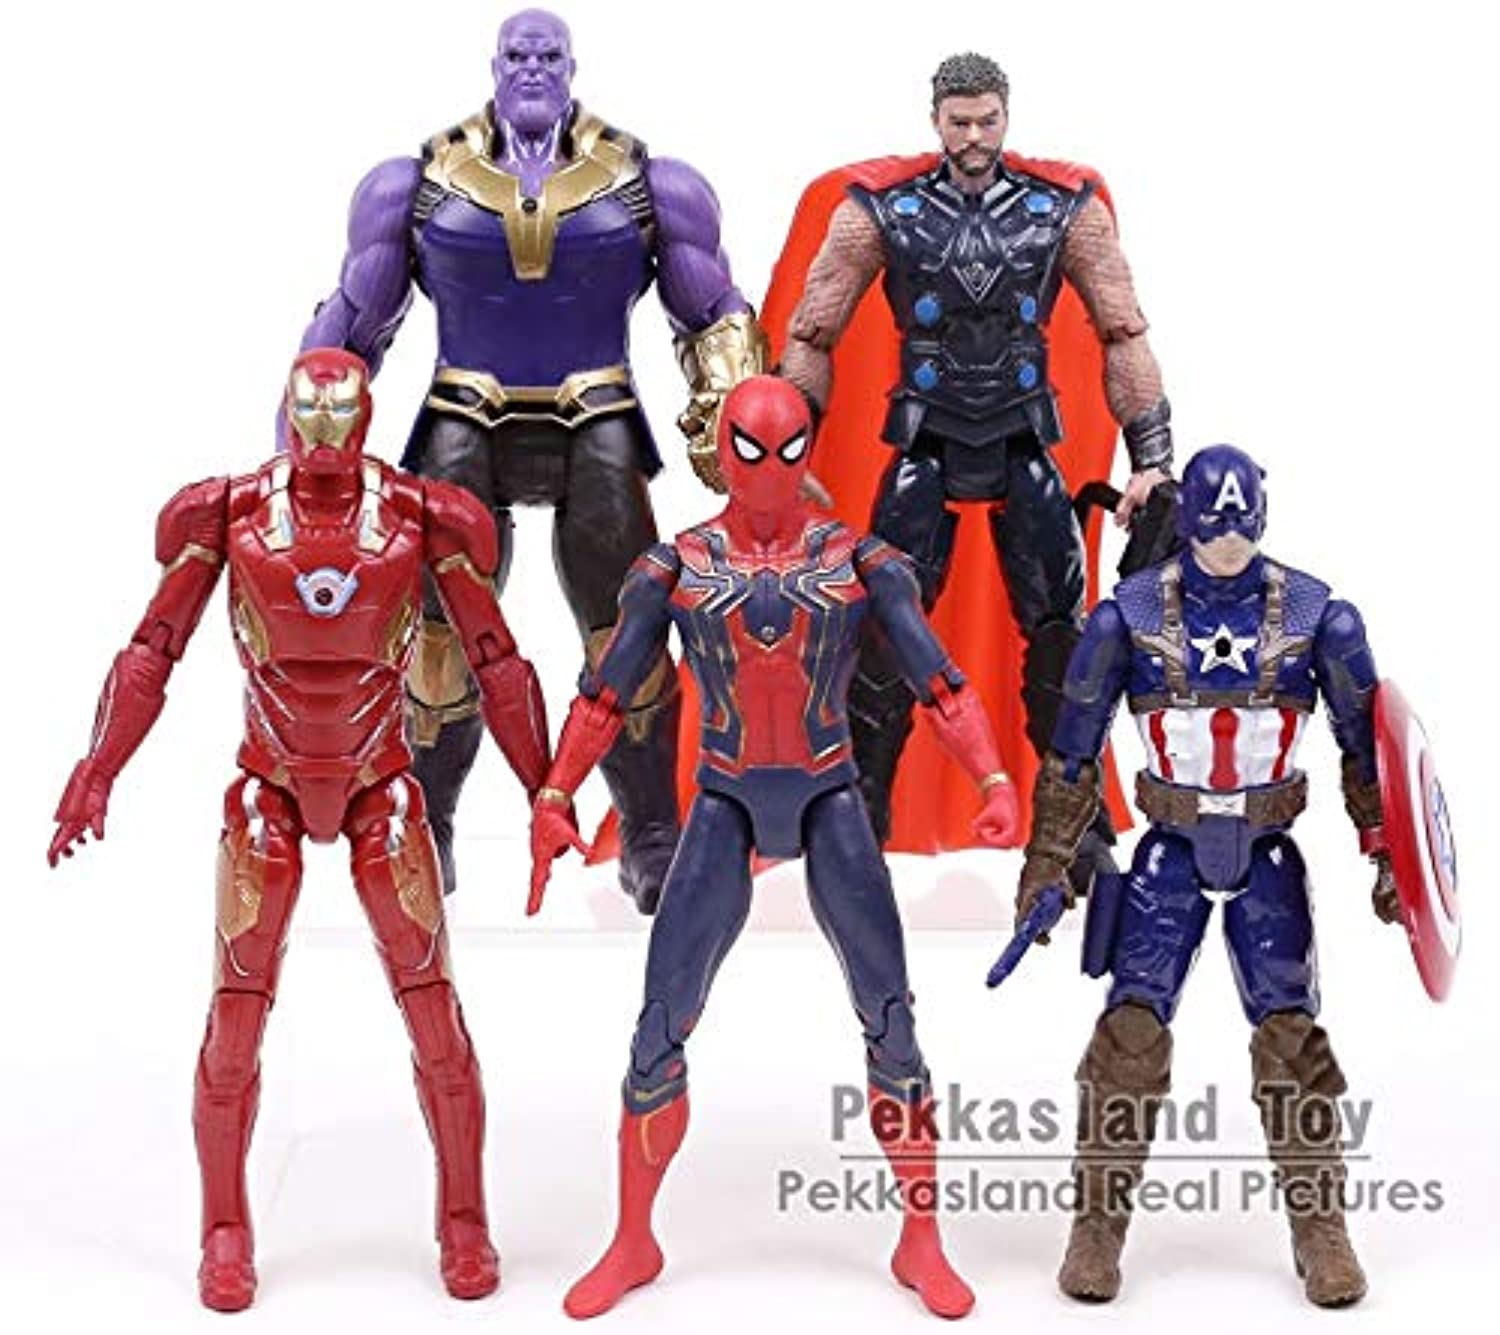 Avengers Infinity War Marvel Super Heroes Figures Toys Ron Man Captain America Hulk Thanos Spiderman Thor Vision Winter Soldier